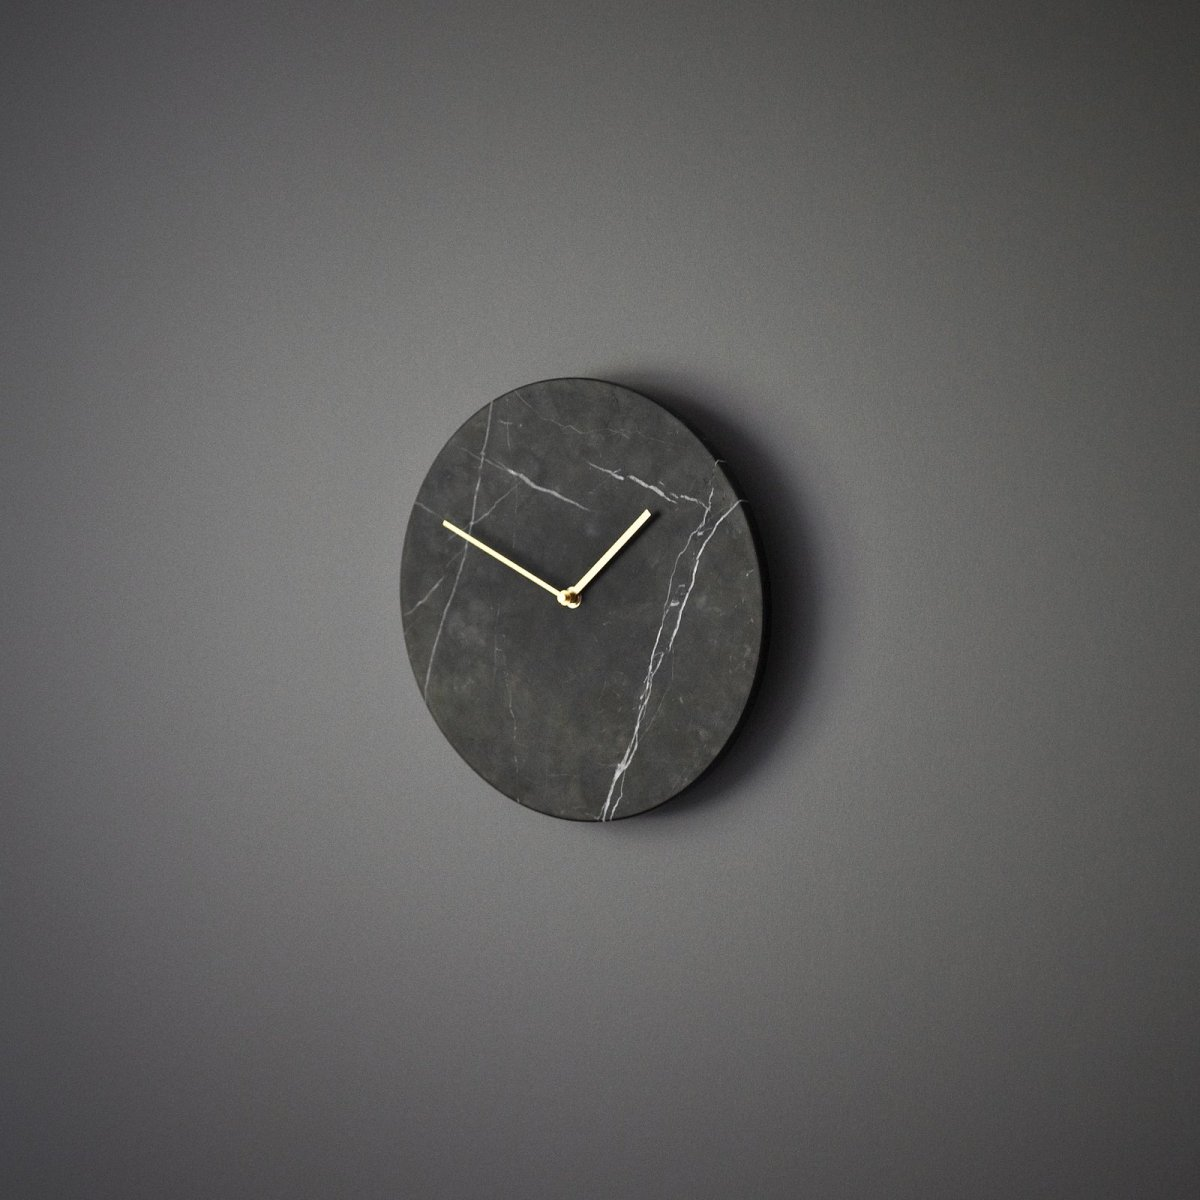 Marble Wall Clock, black.